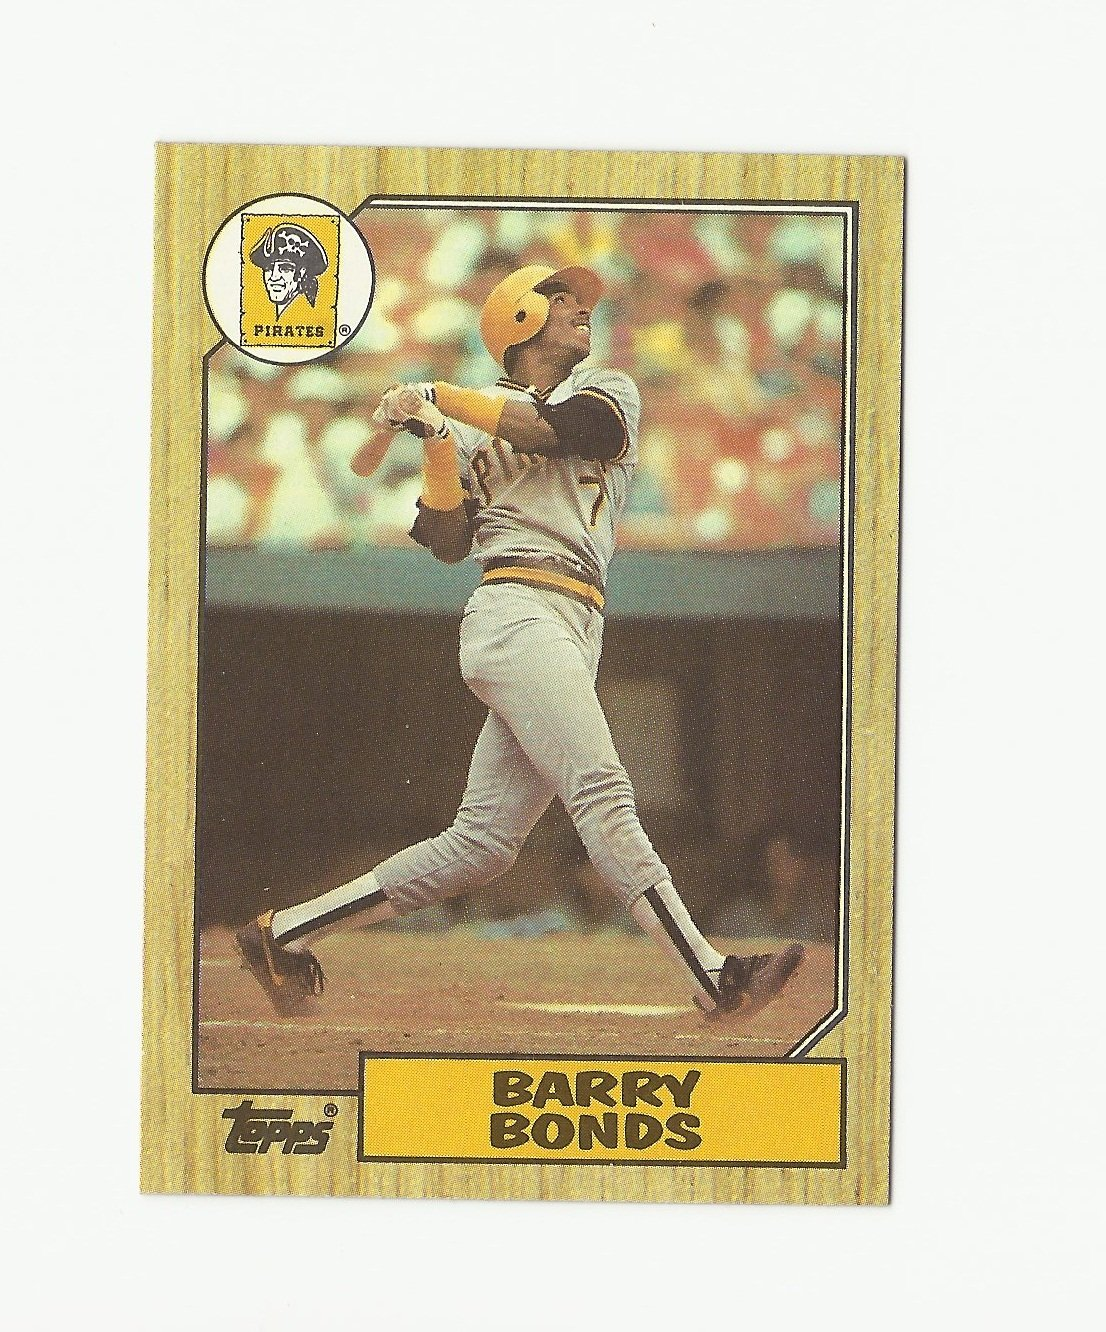 Barry Bonds 1987 Topps Rookie Card #320 Pittsburgh Pirates